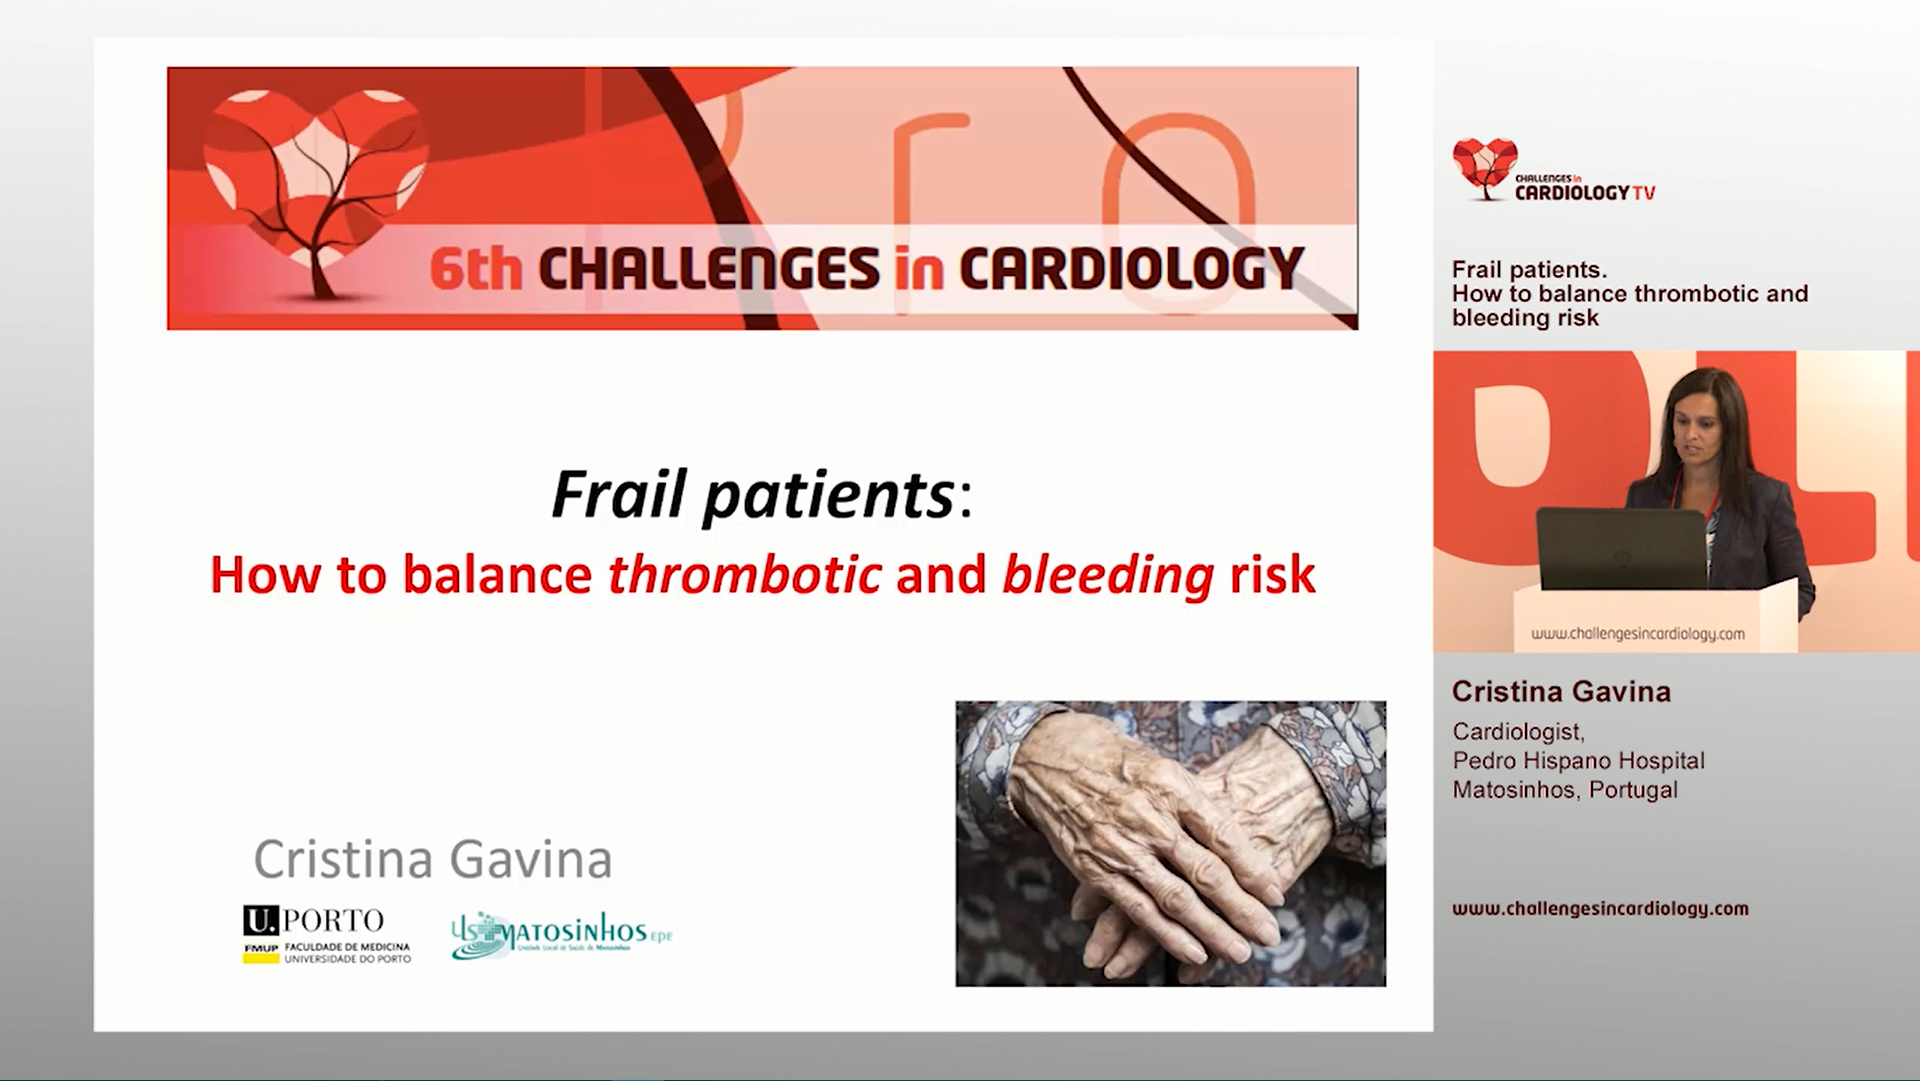 Cristina Gavina - 6th Challenges in Cardiology